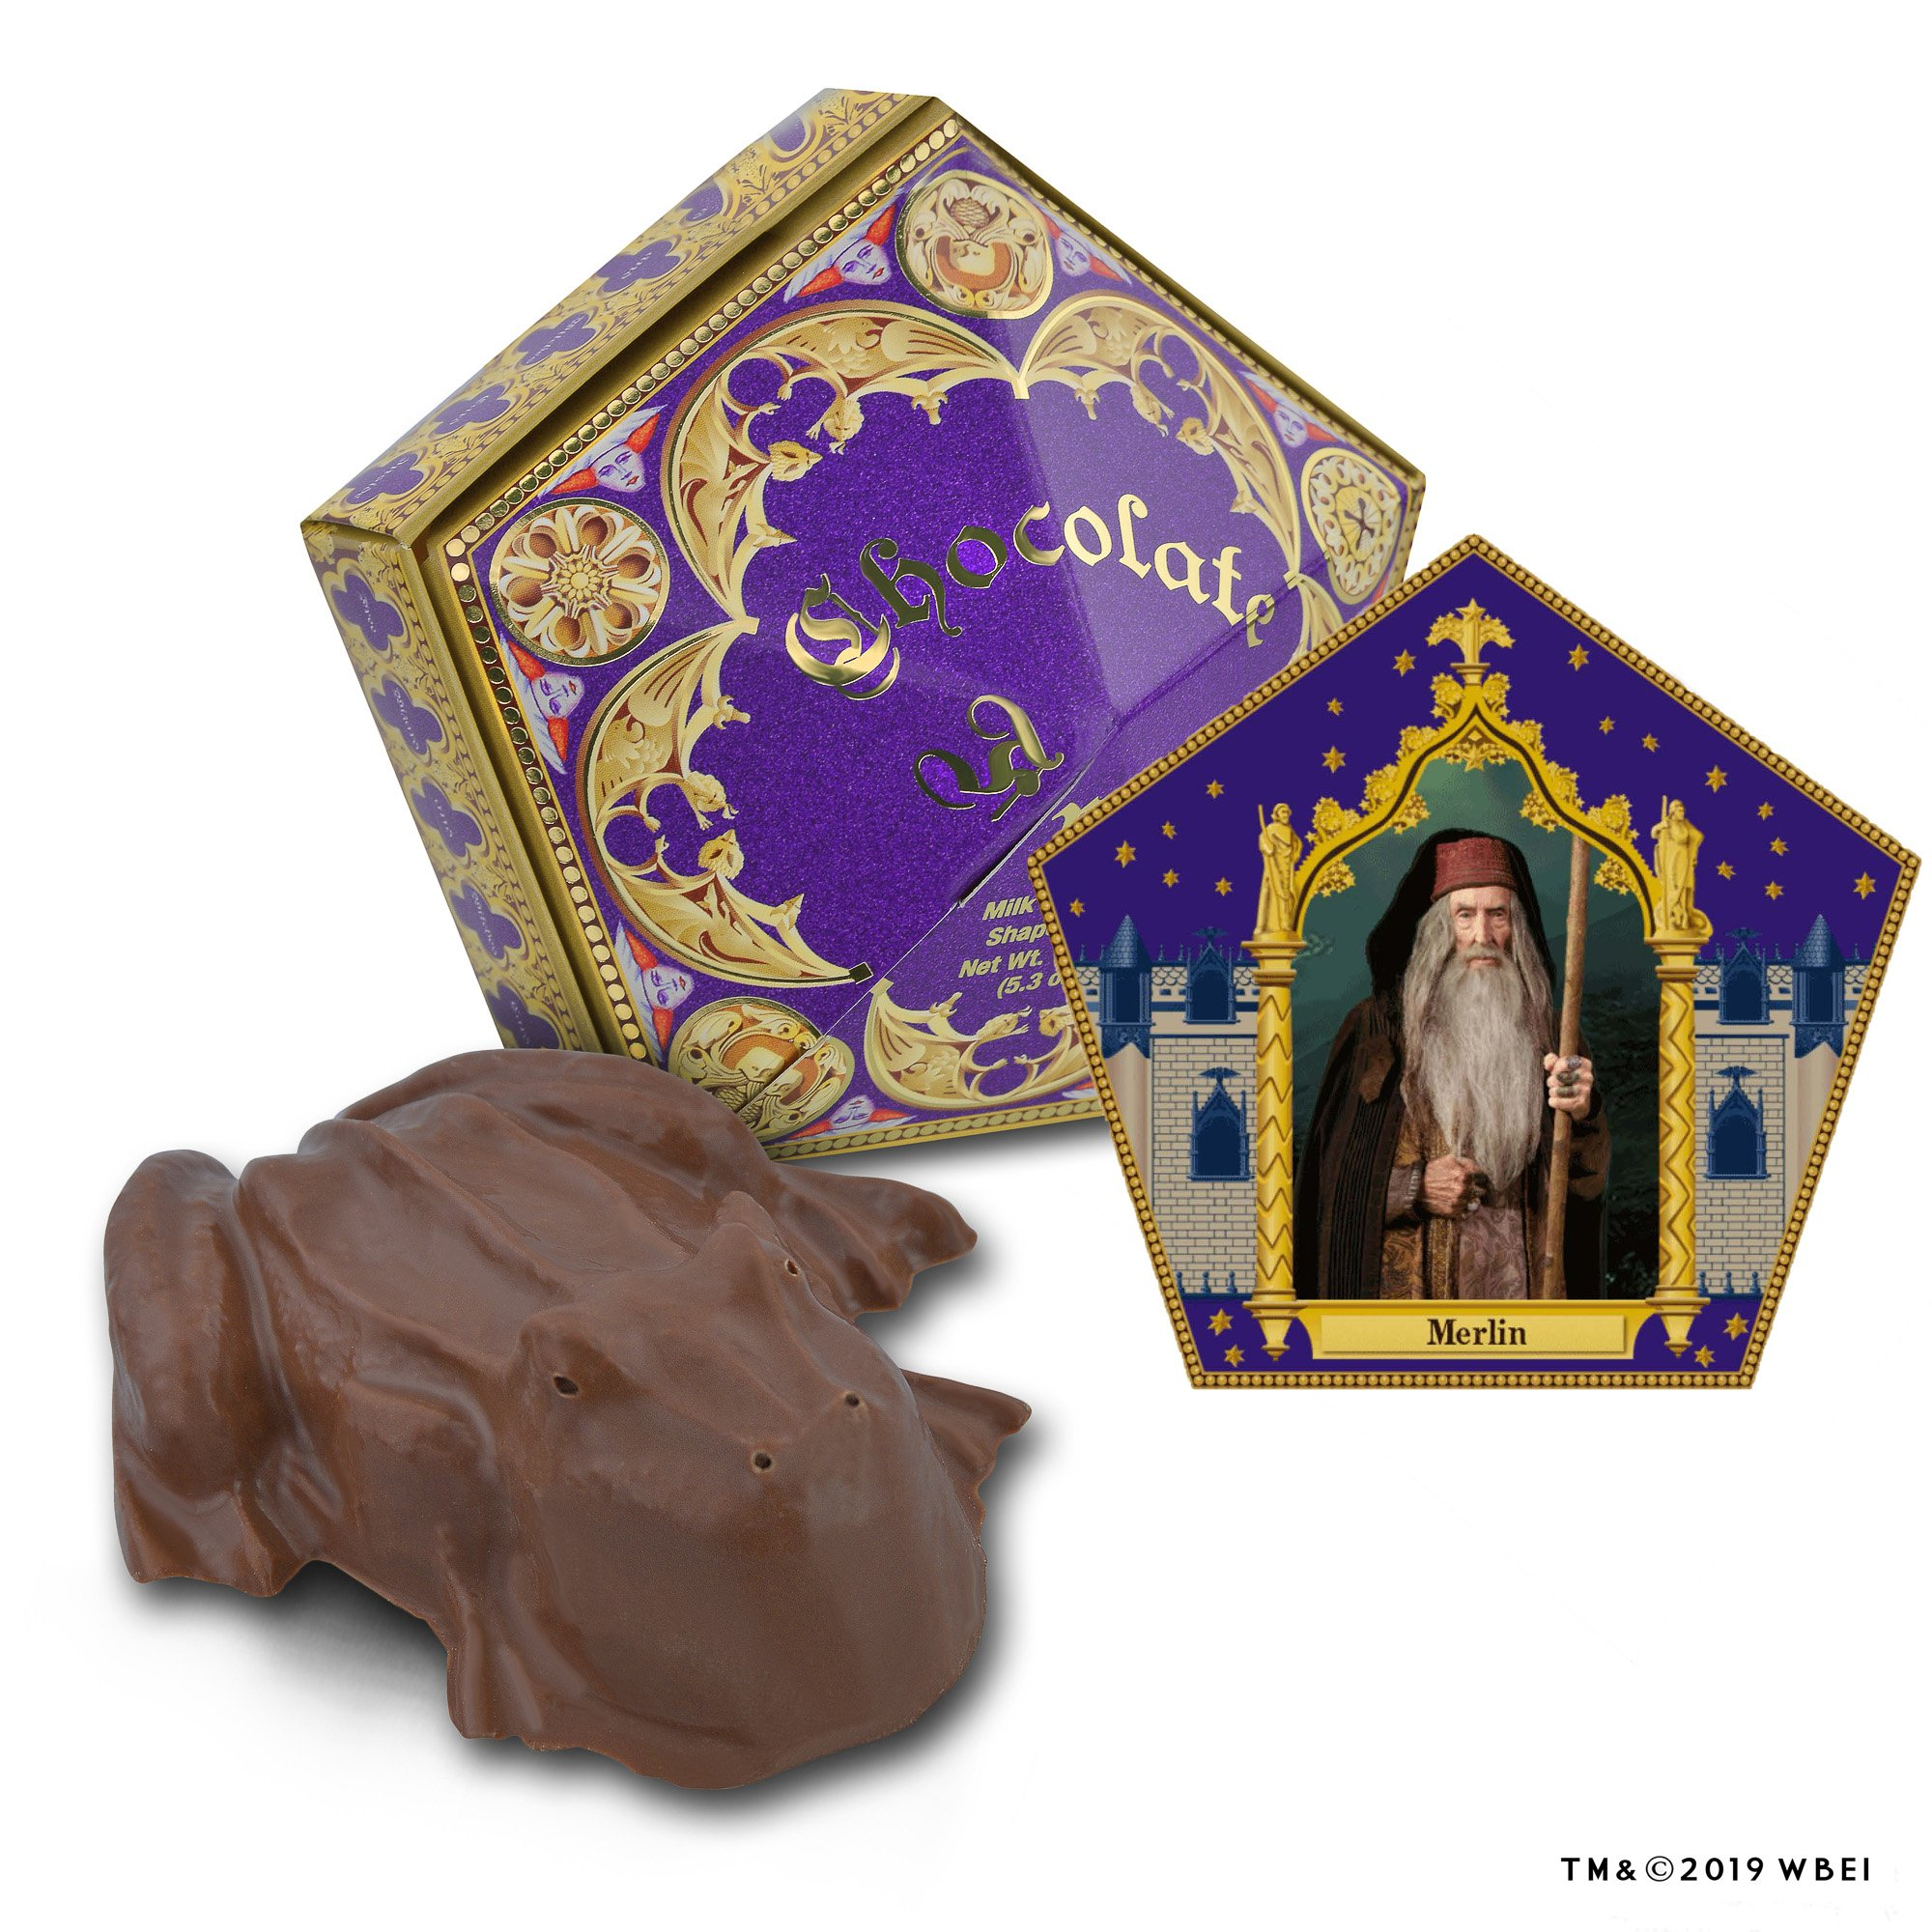 chocolate_frog_card_merlin.jpg